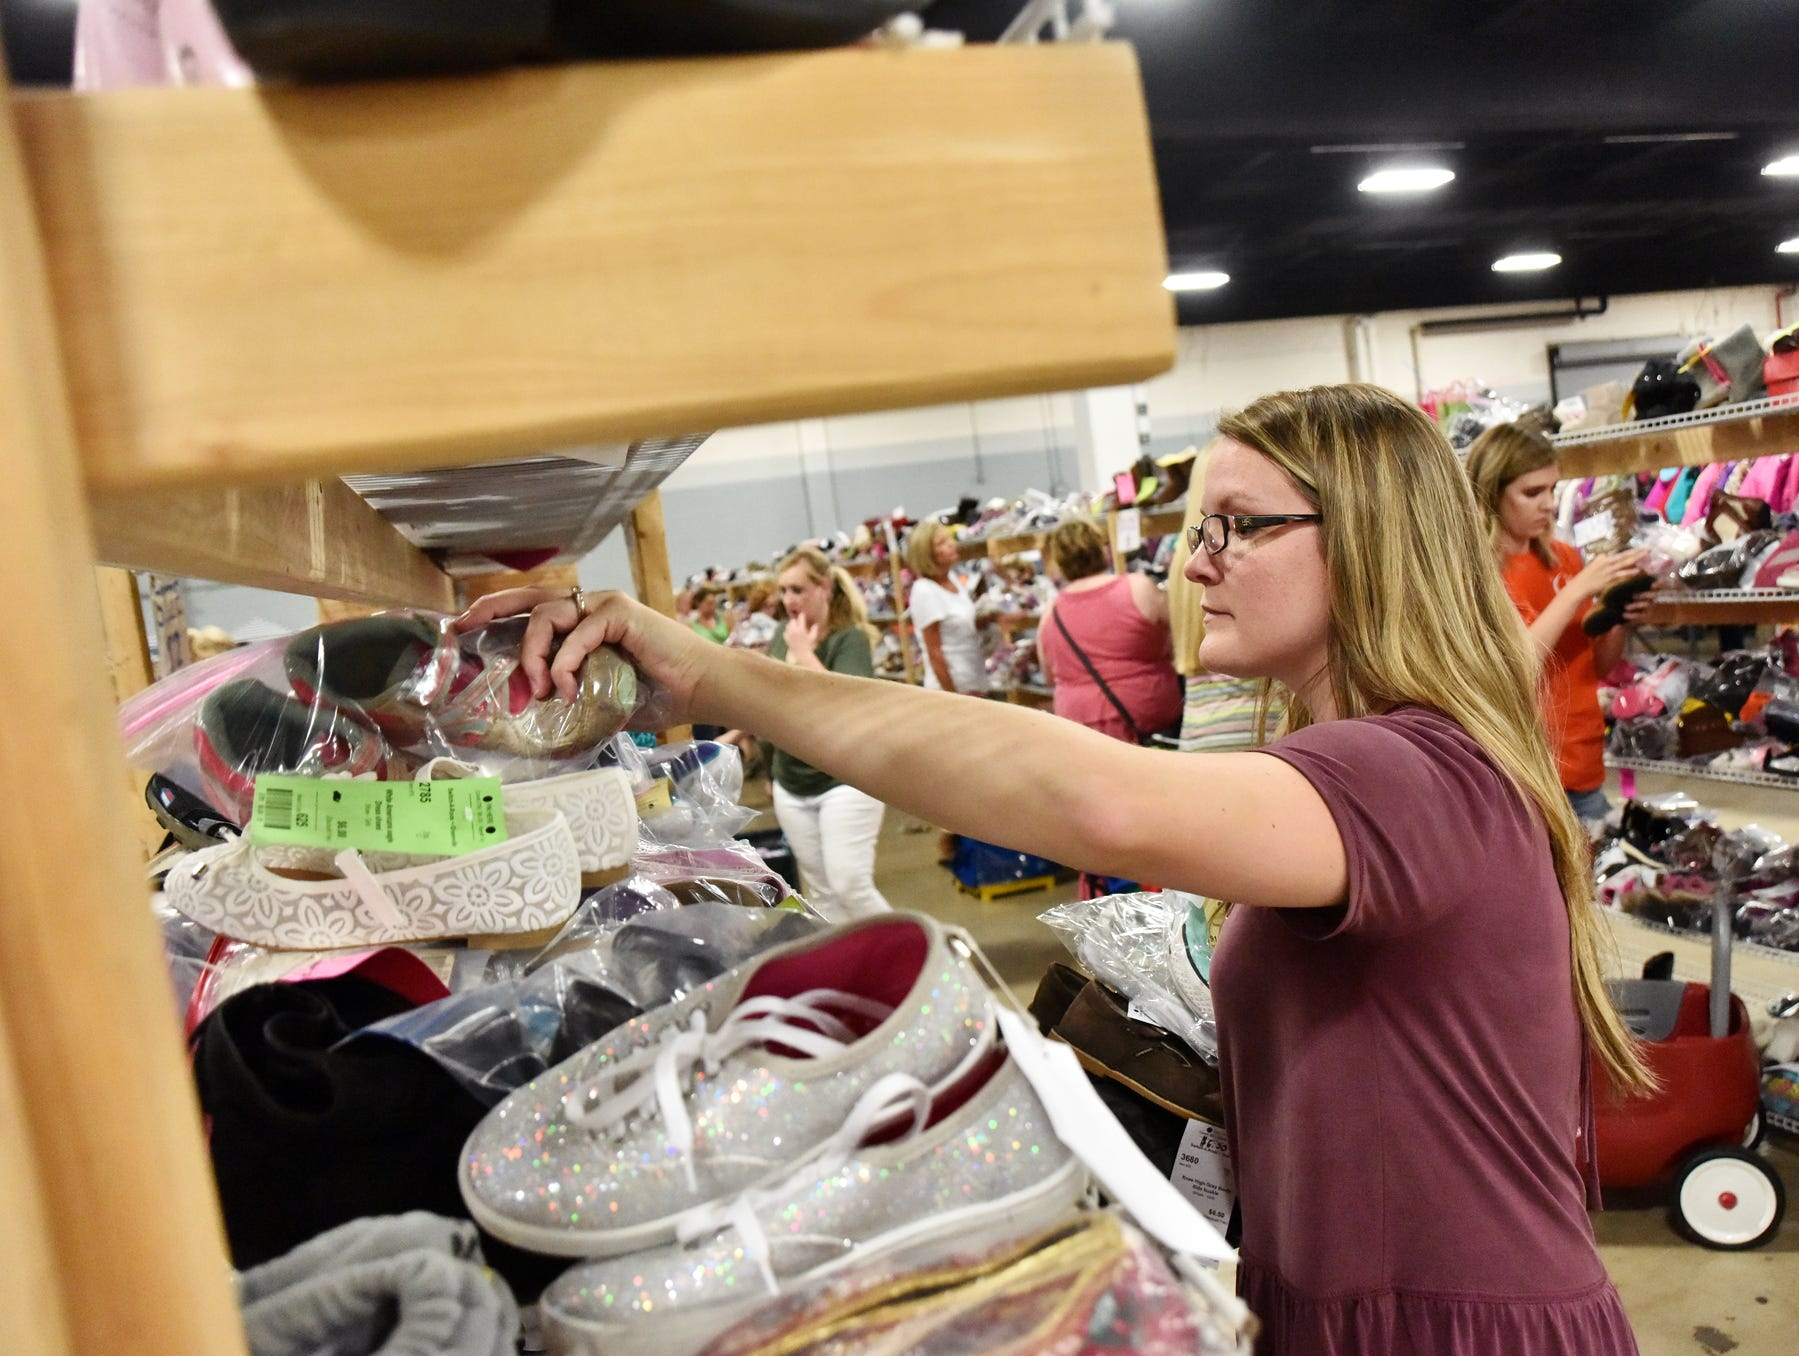 Megan Grigg sifts through a shelf of shoes during the Switch-A-Roos children's consignment event at the TD Convention Center in Greenville on Wednesday afternoon, August 8, 2018.